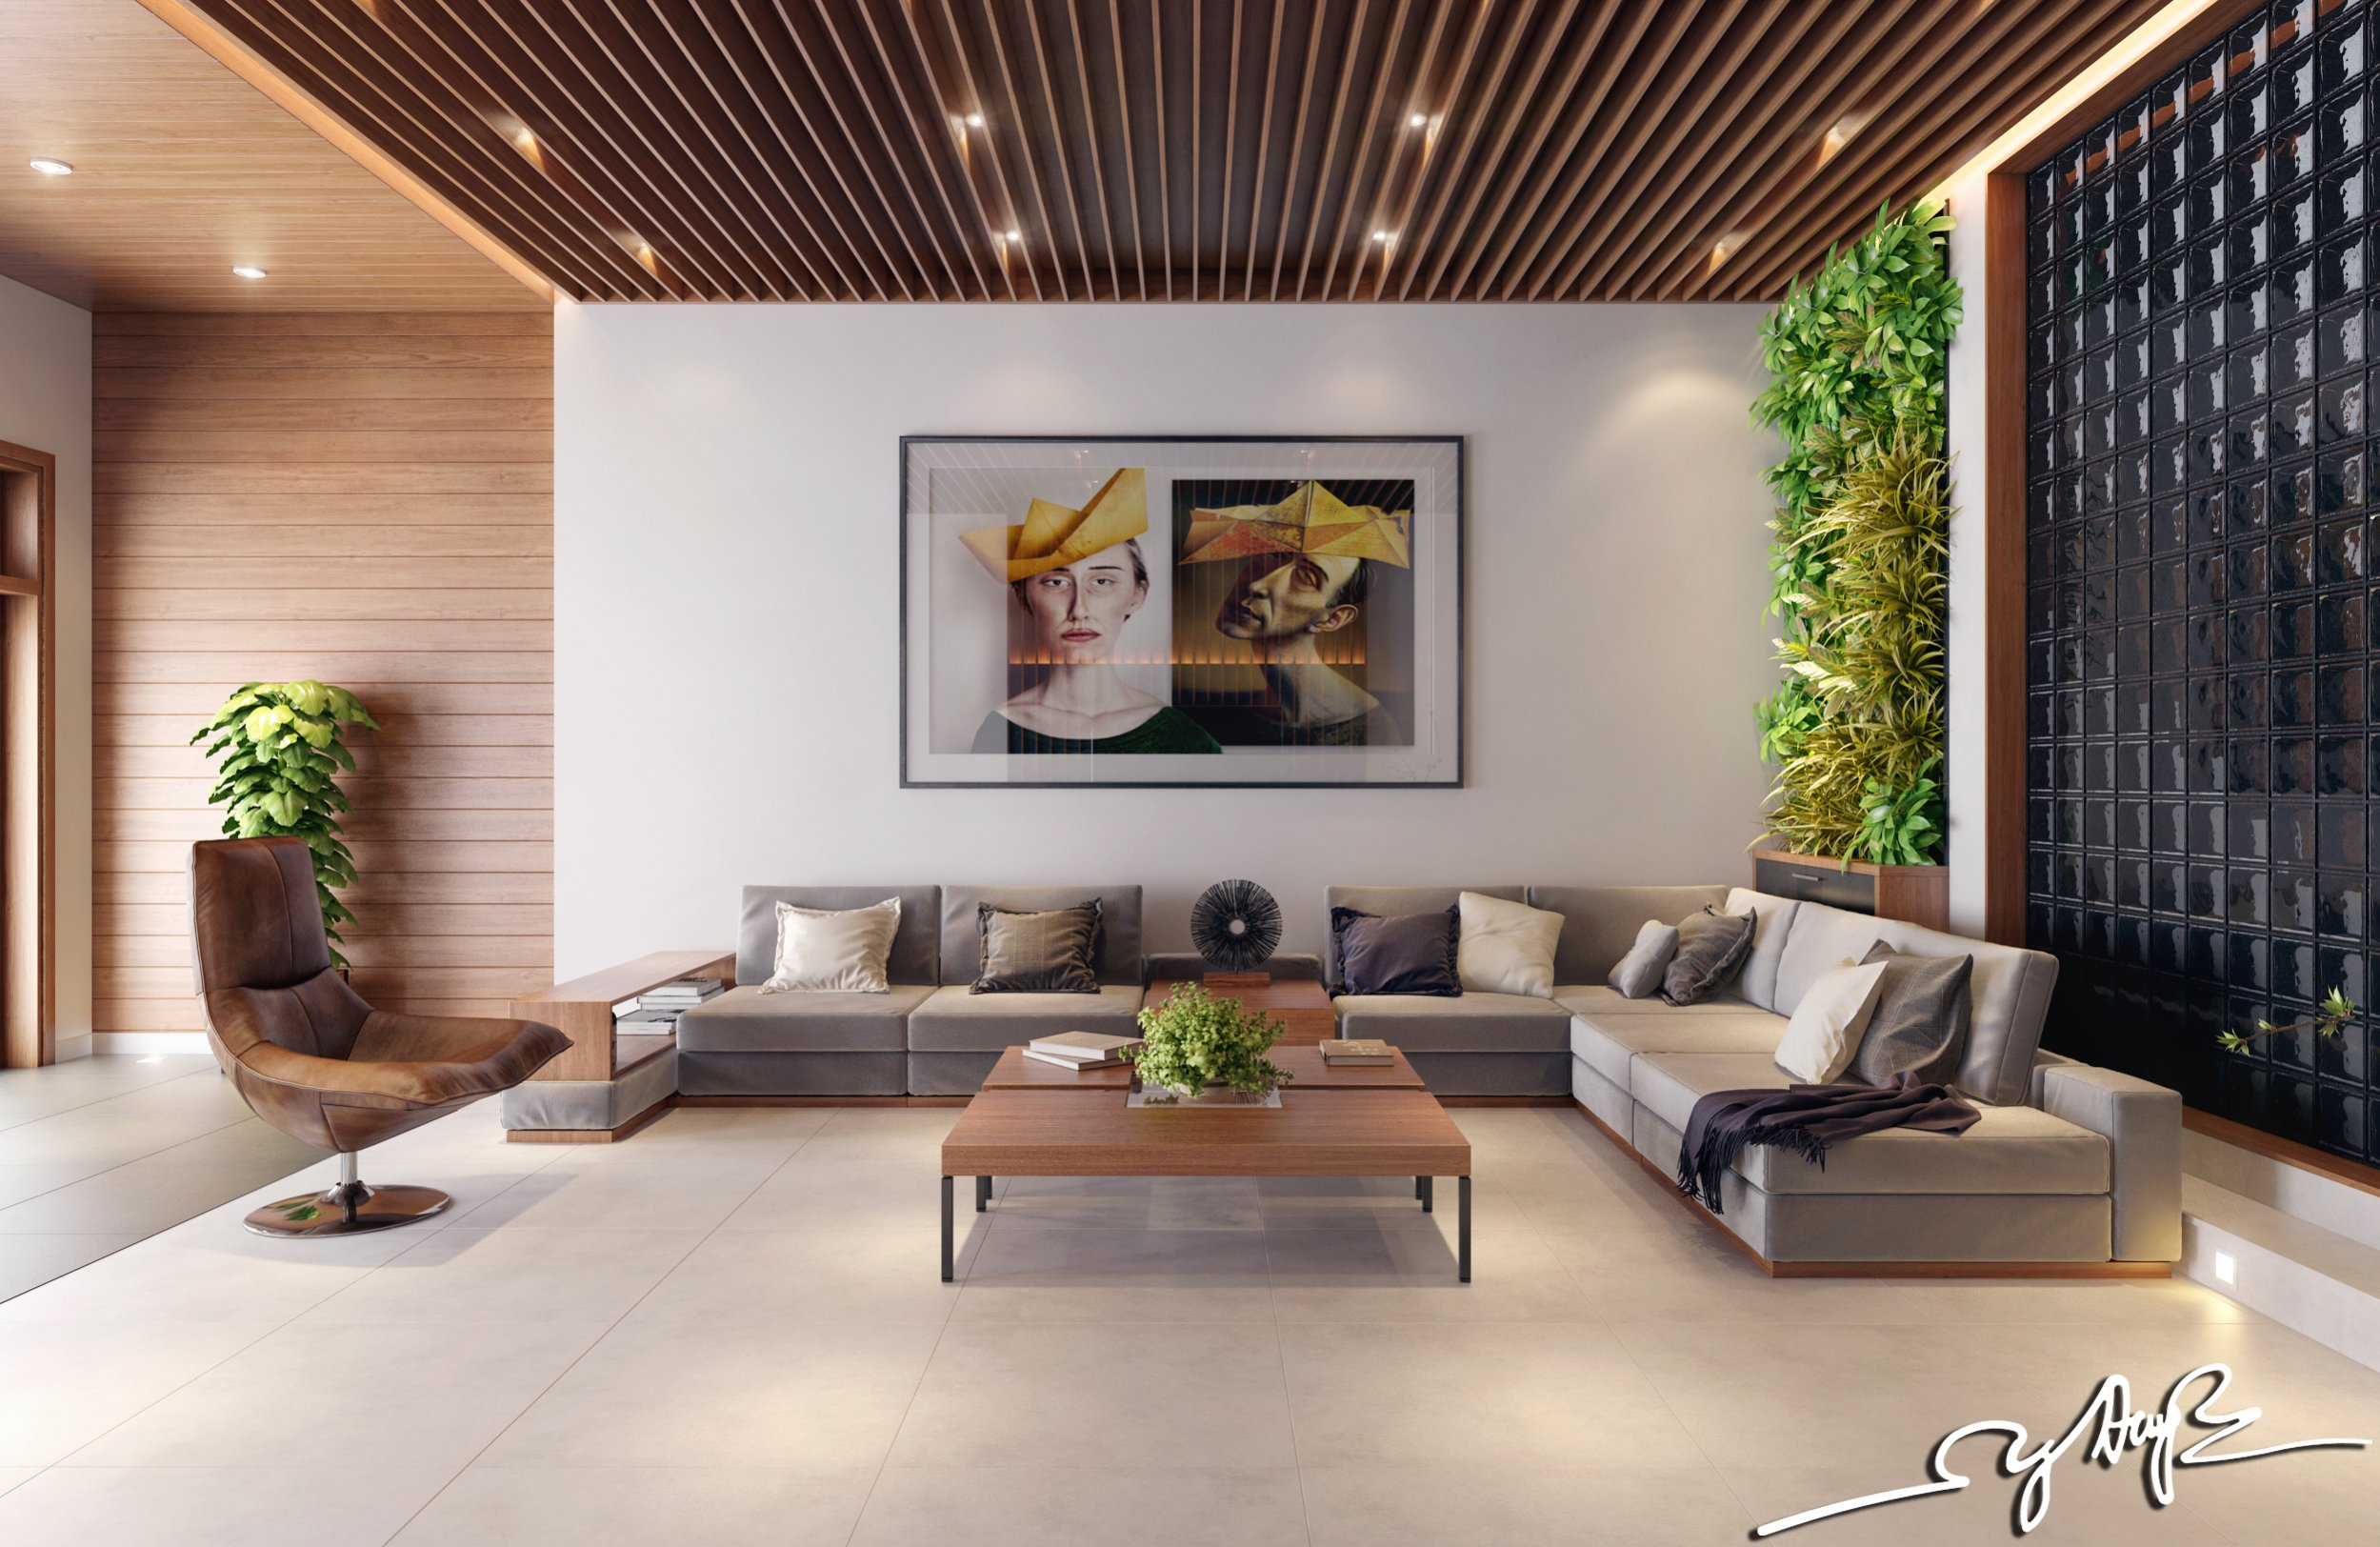 High Quality Interior Design Close To Nature: Rich Wood Themes And Indoor Vertical  Gardens